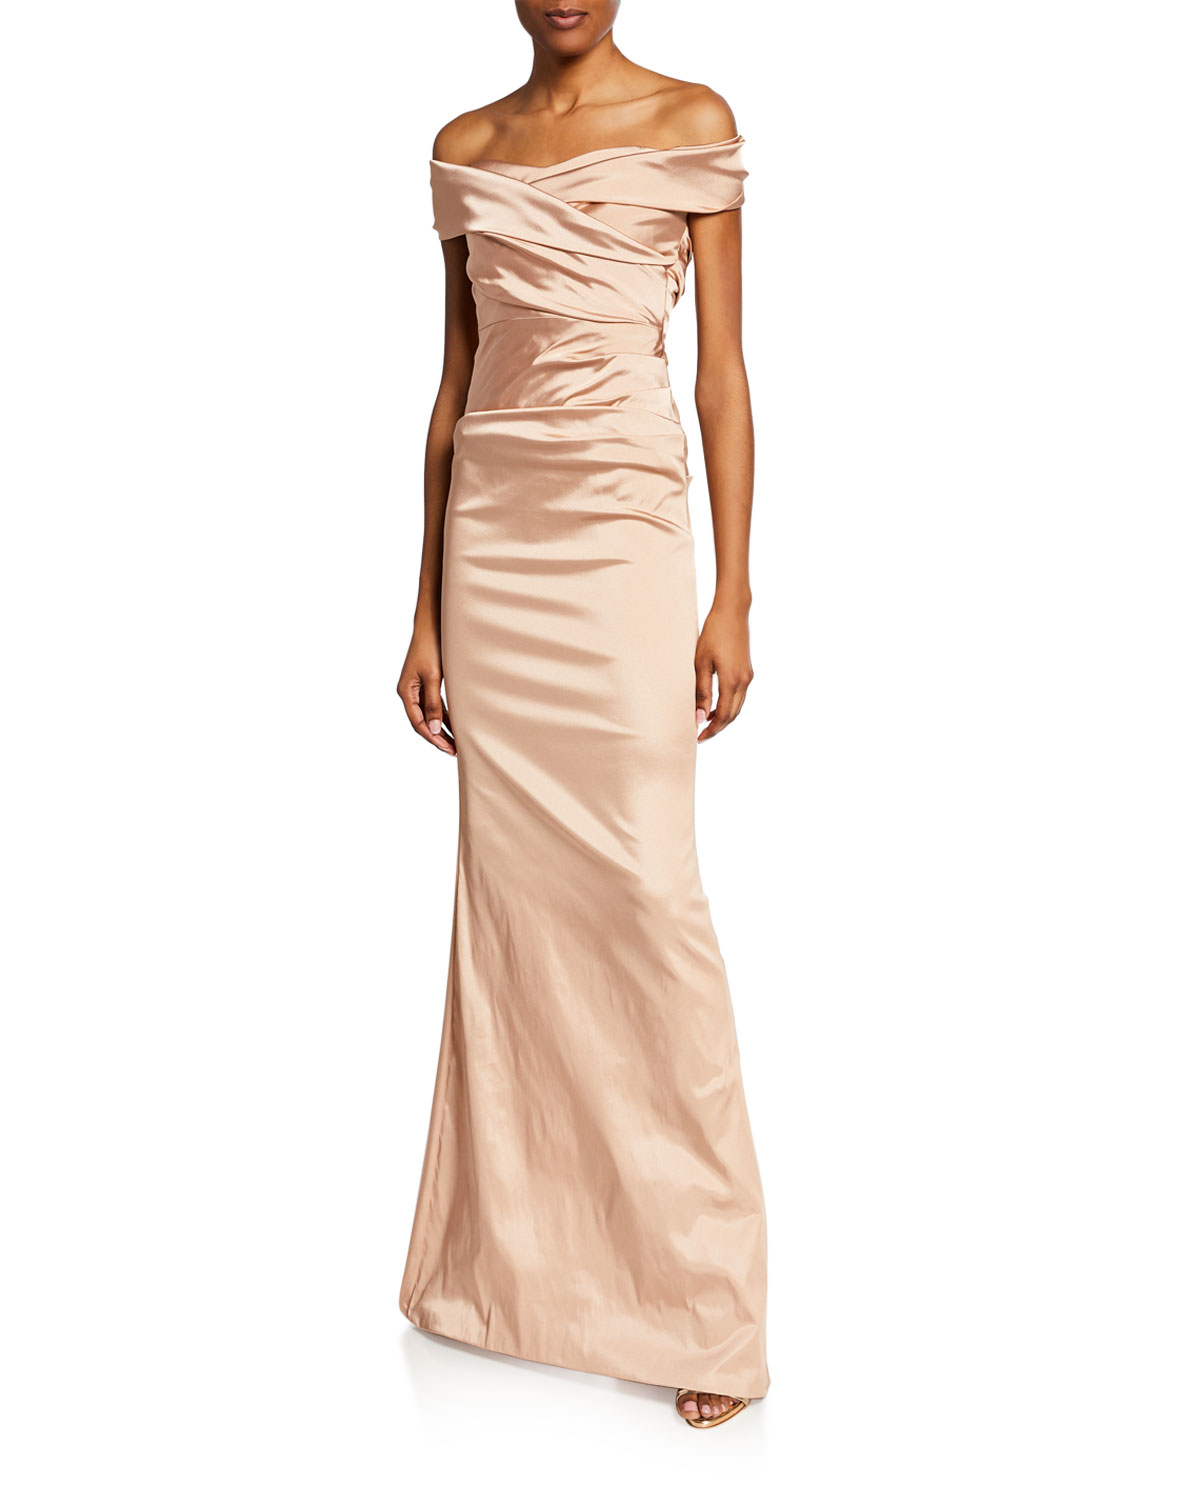 Off The Shoulder Short Sleeve Ruched Stretch Satin Gown by Rickie Freeman For Teri Jon